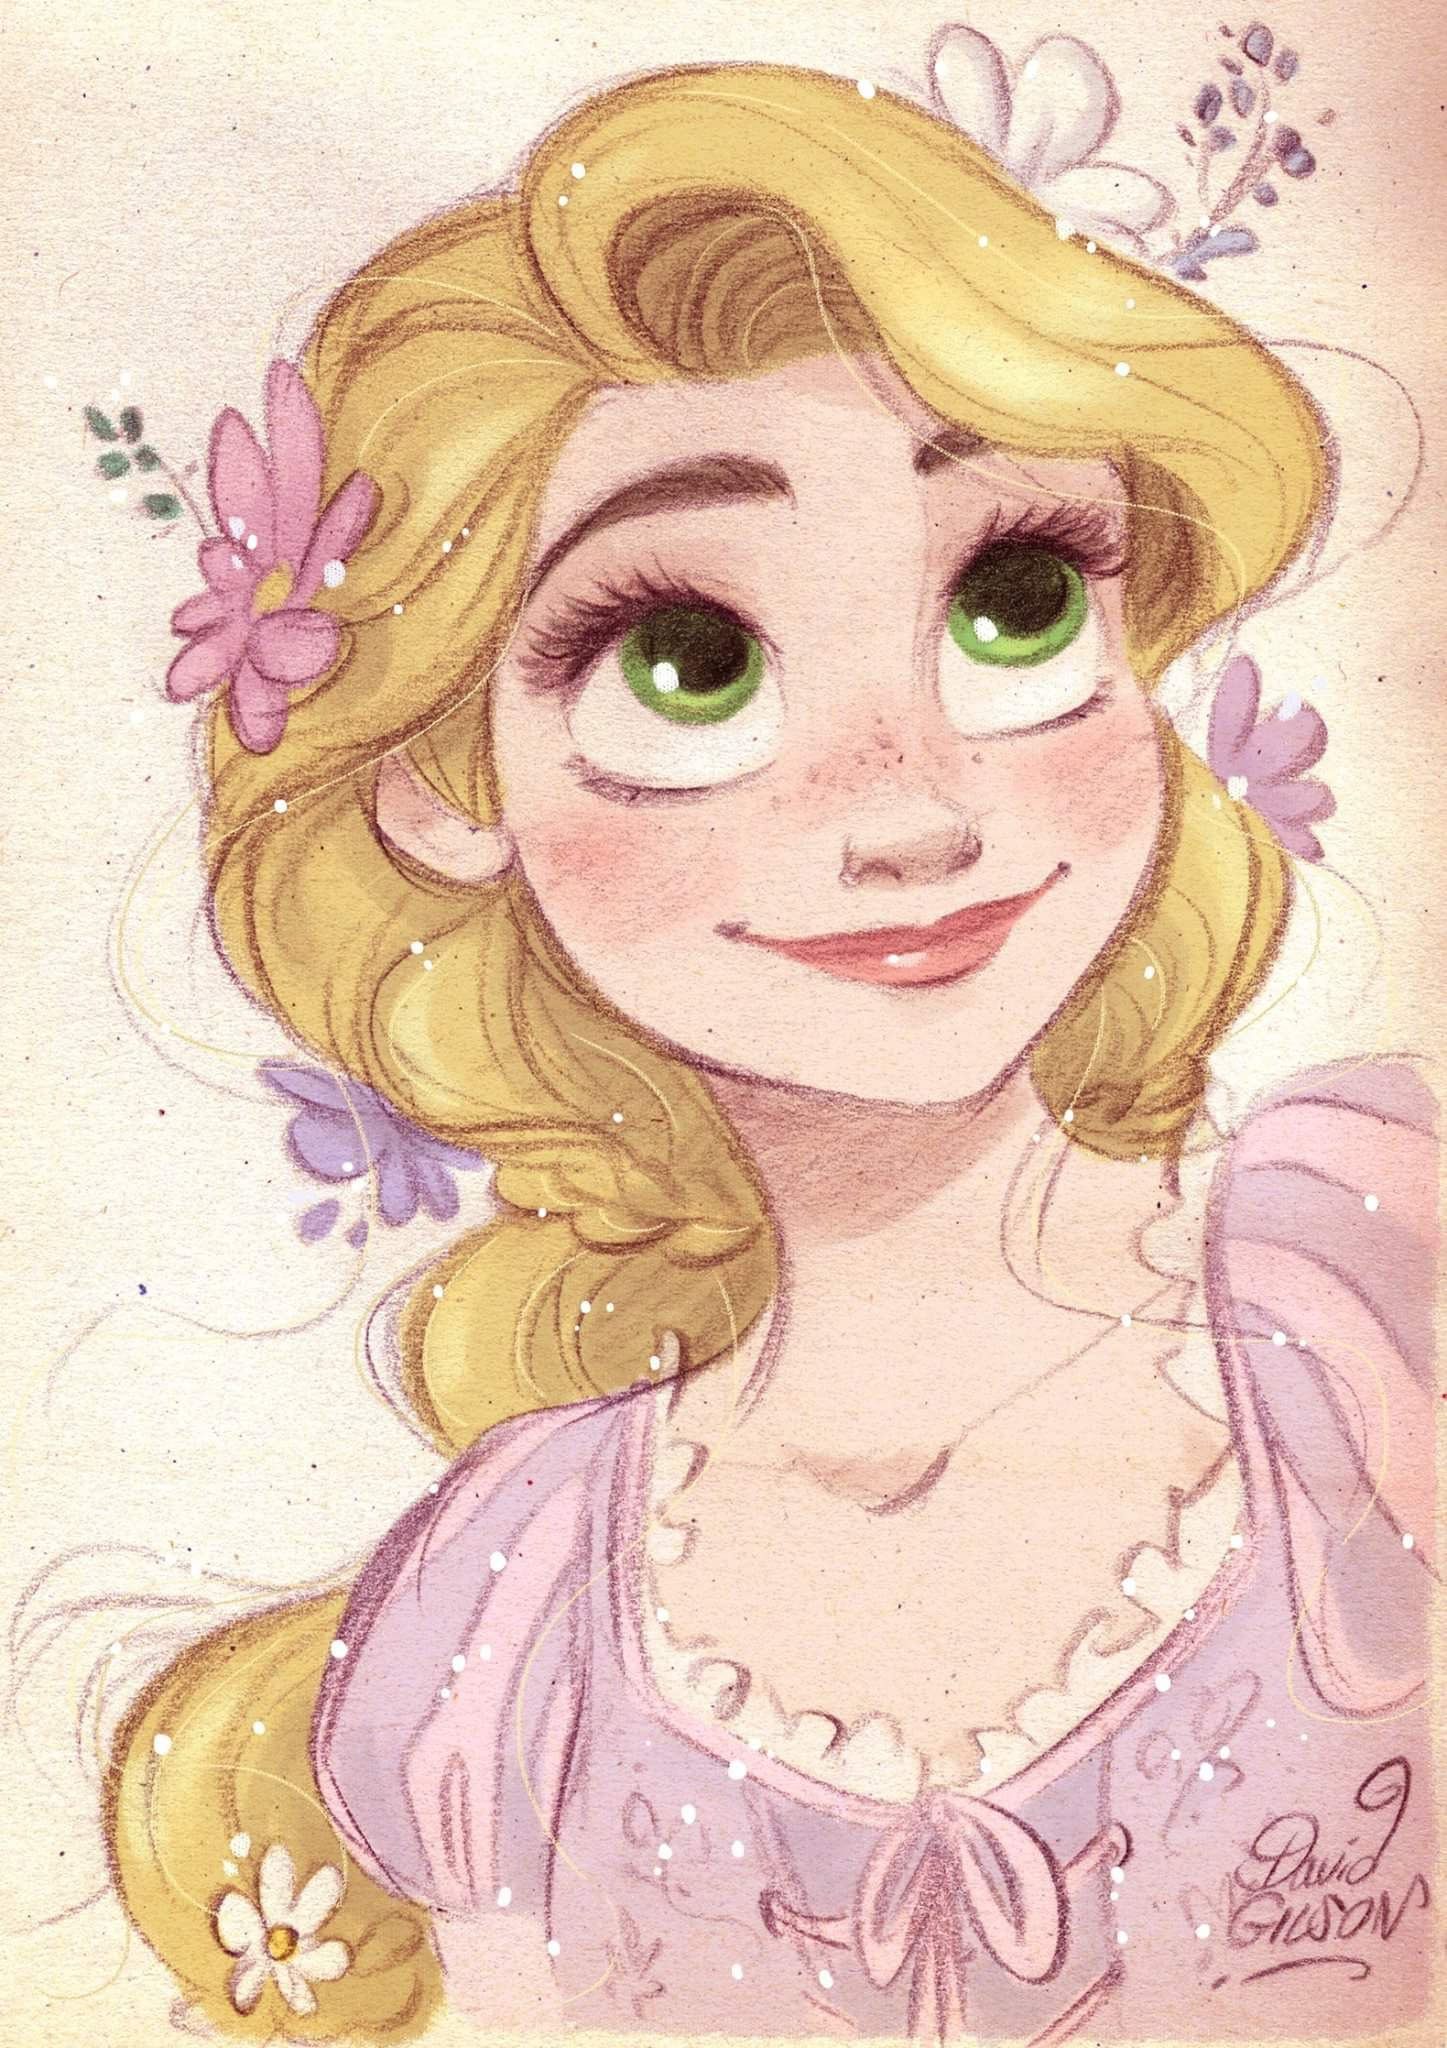 Rapunzel iphone wallpaper tumblr - Rapunzel By David Gilson More Love This So Much Tangled Is One Of My All Time Favorite Movies